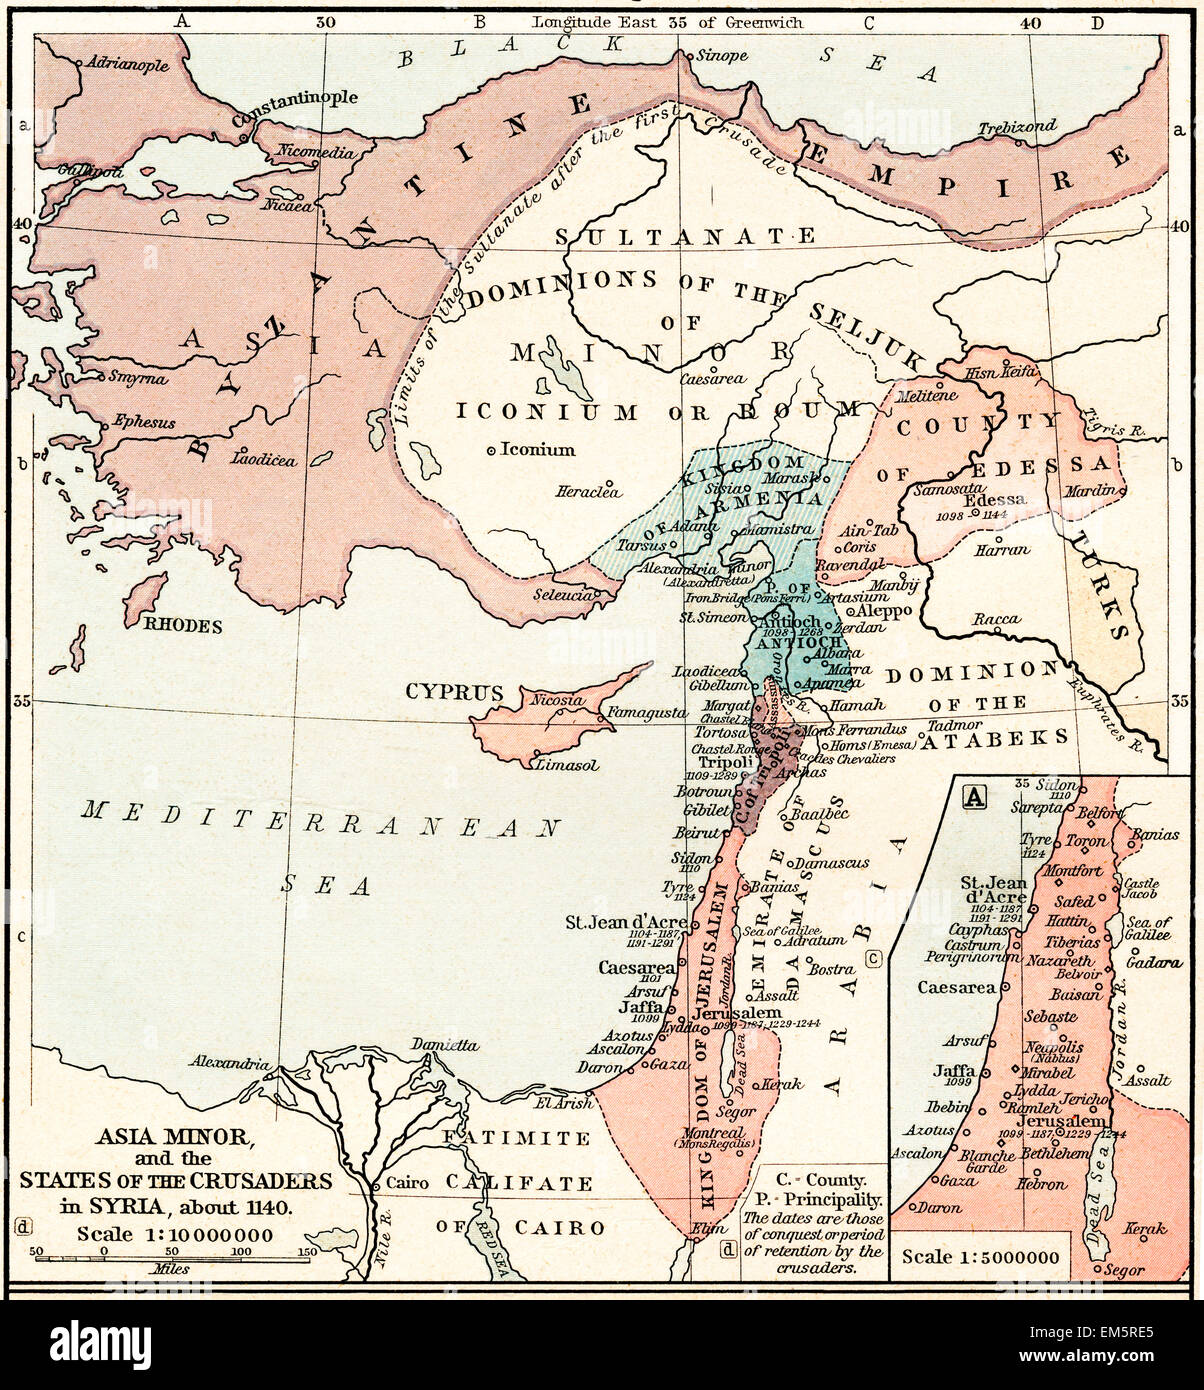 Map of Asia Minor and the Crusader states in Syria, c. 1140. - Stock Image